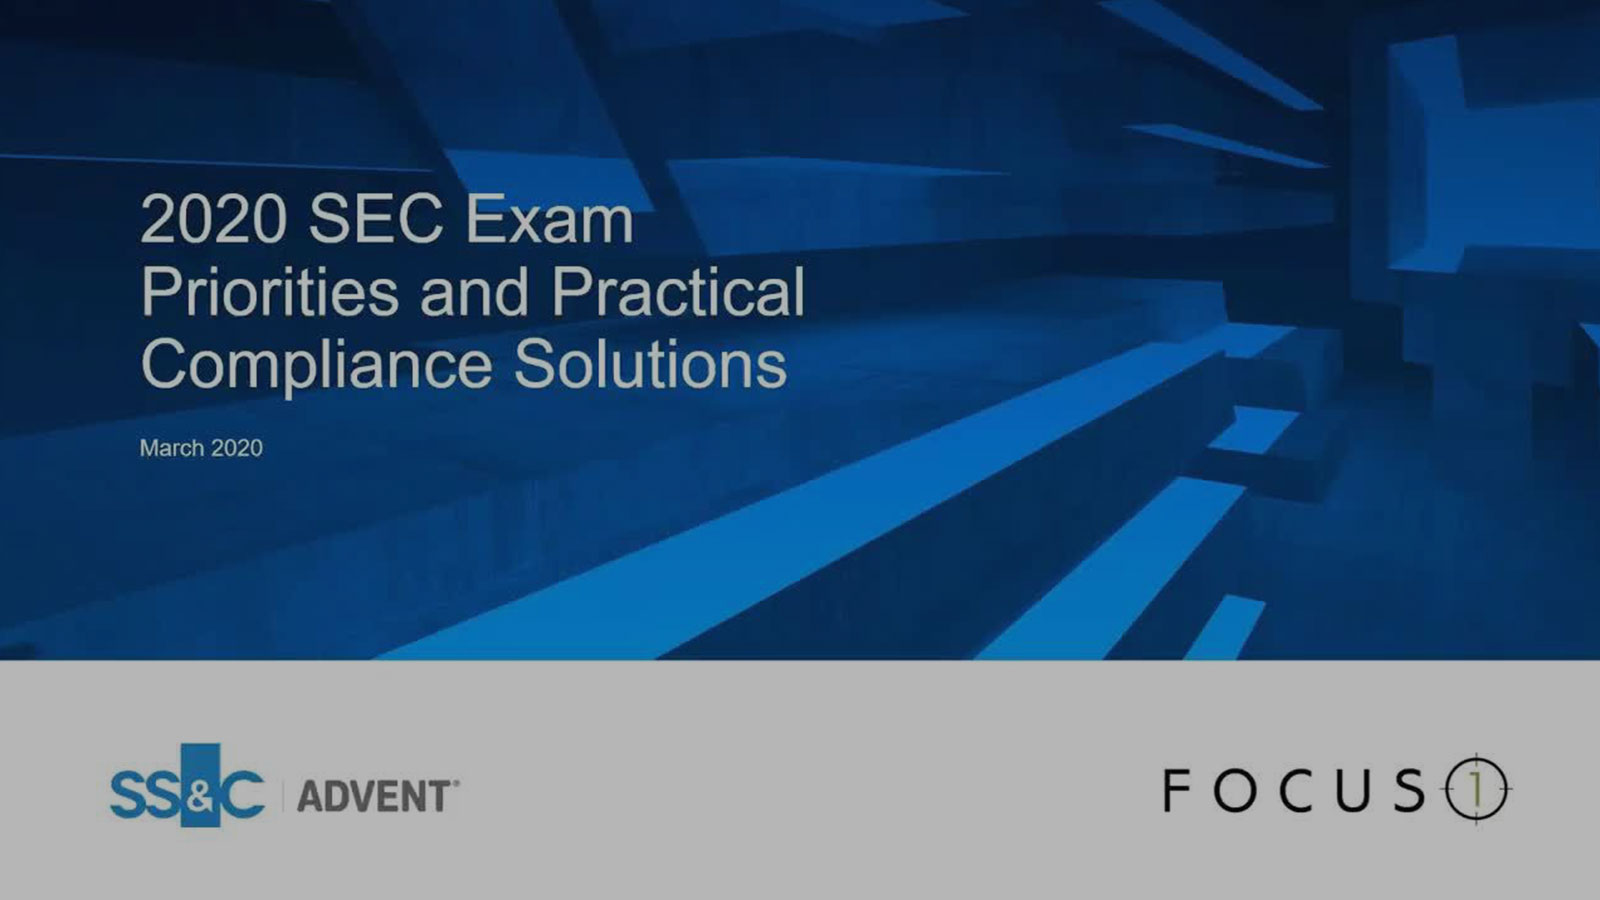 poster image for 2020 SEC Exam Priorities and Practical Compliance Solutions